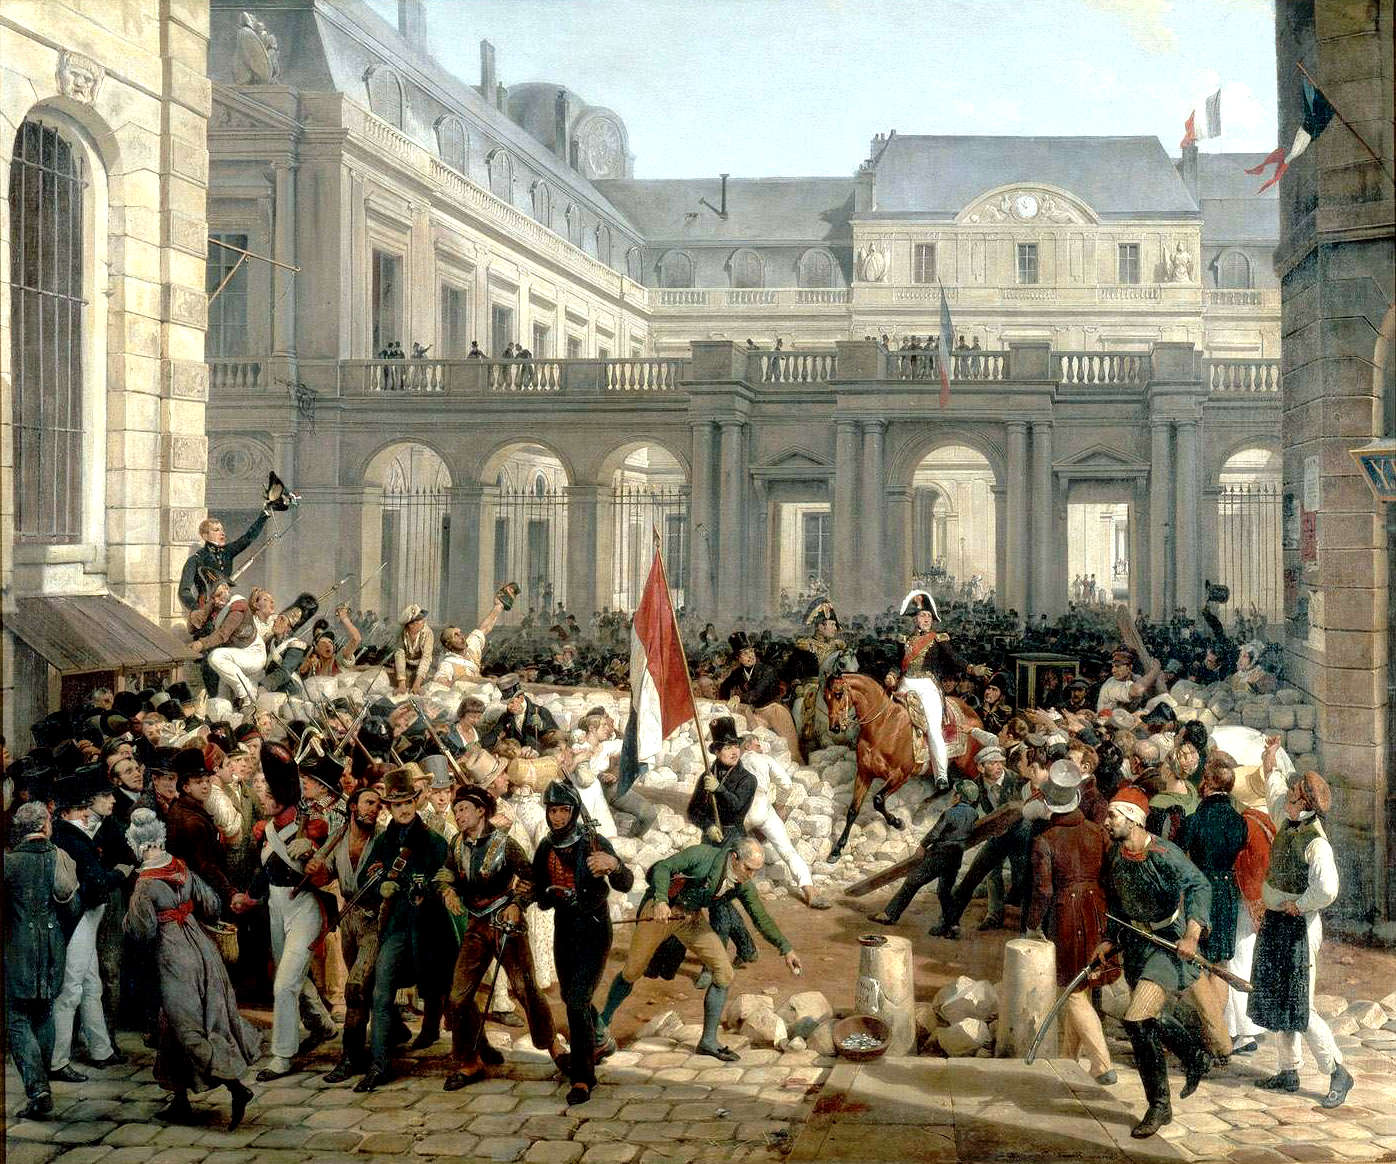 an introduction to the dictatorial style of government napoleon during the french revolution Introduction it is generally agreed was the napoleonic regime a military dictatorship from a study of the french revolution wrote that napoleon's.